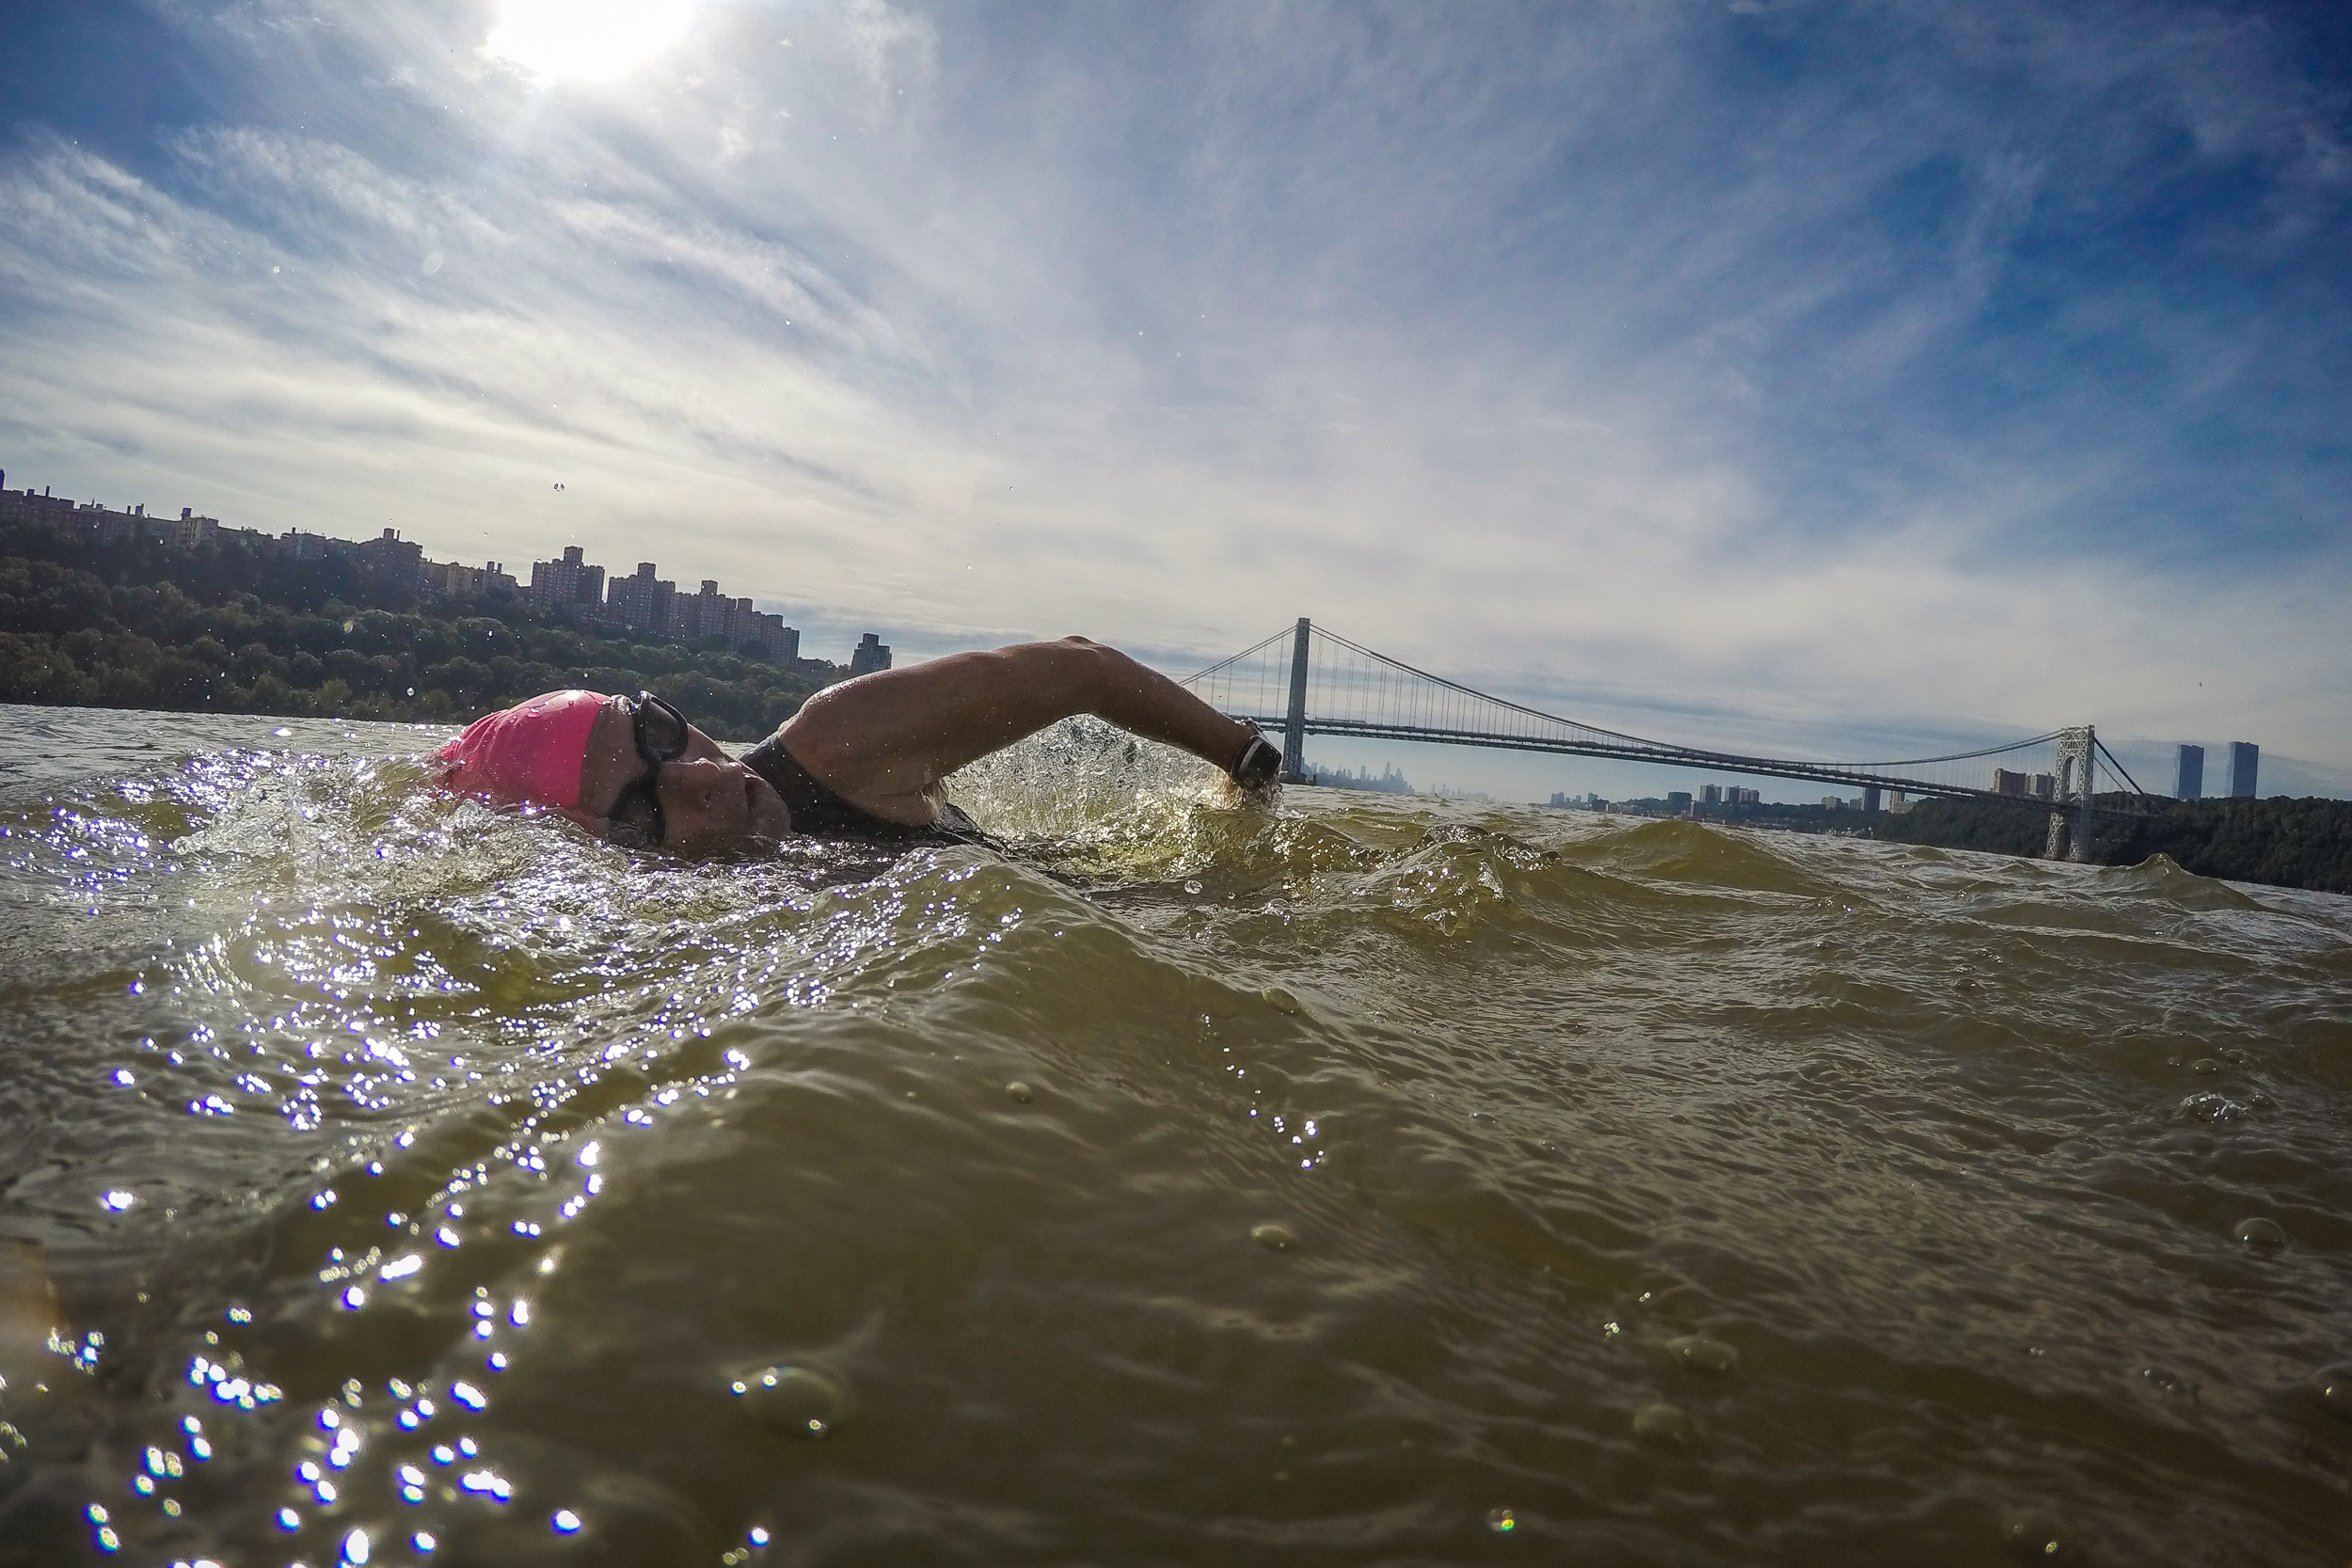 A swimmer in the Hudson River, the George Washington Bridge in the background.